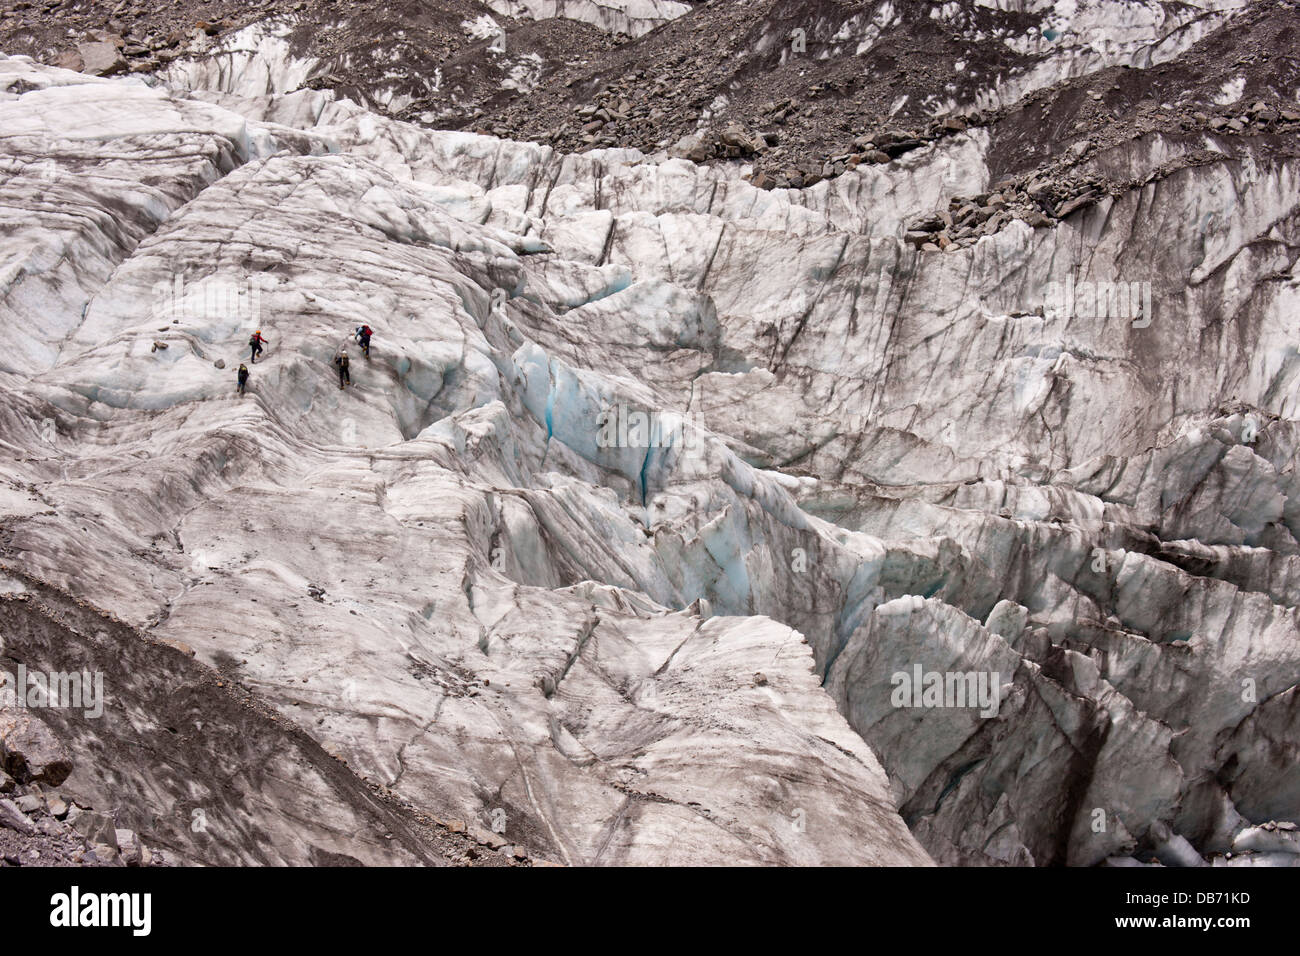 South Pacific, New Zealand, South Island. Hikers climbing on the icy snow of Fox Glacier with a guide. - Stock Image